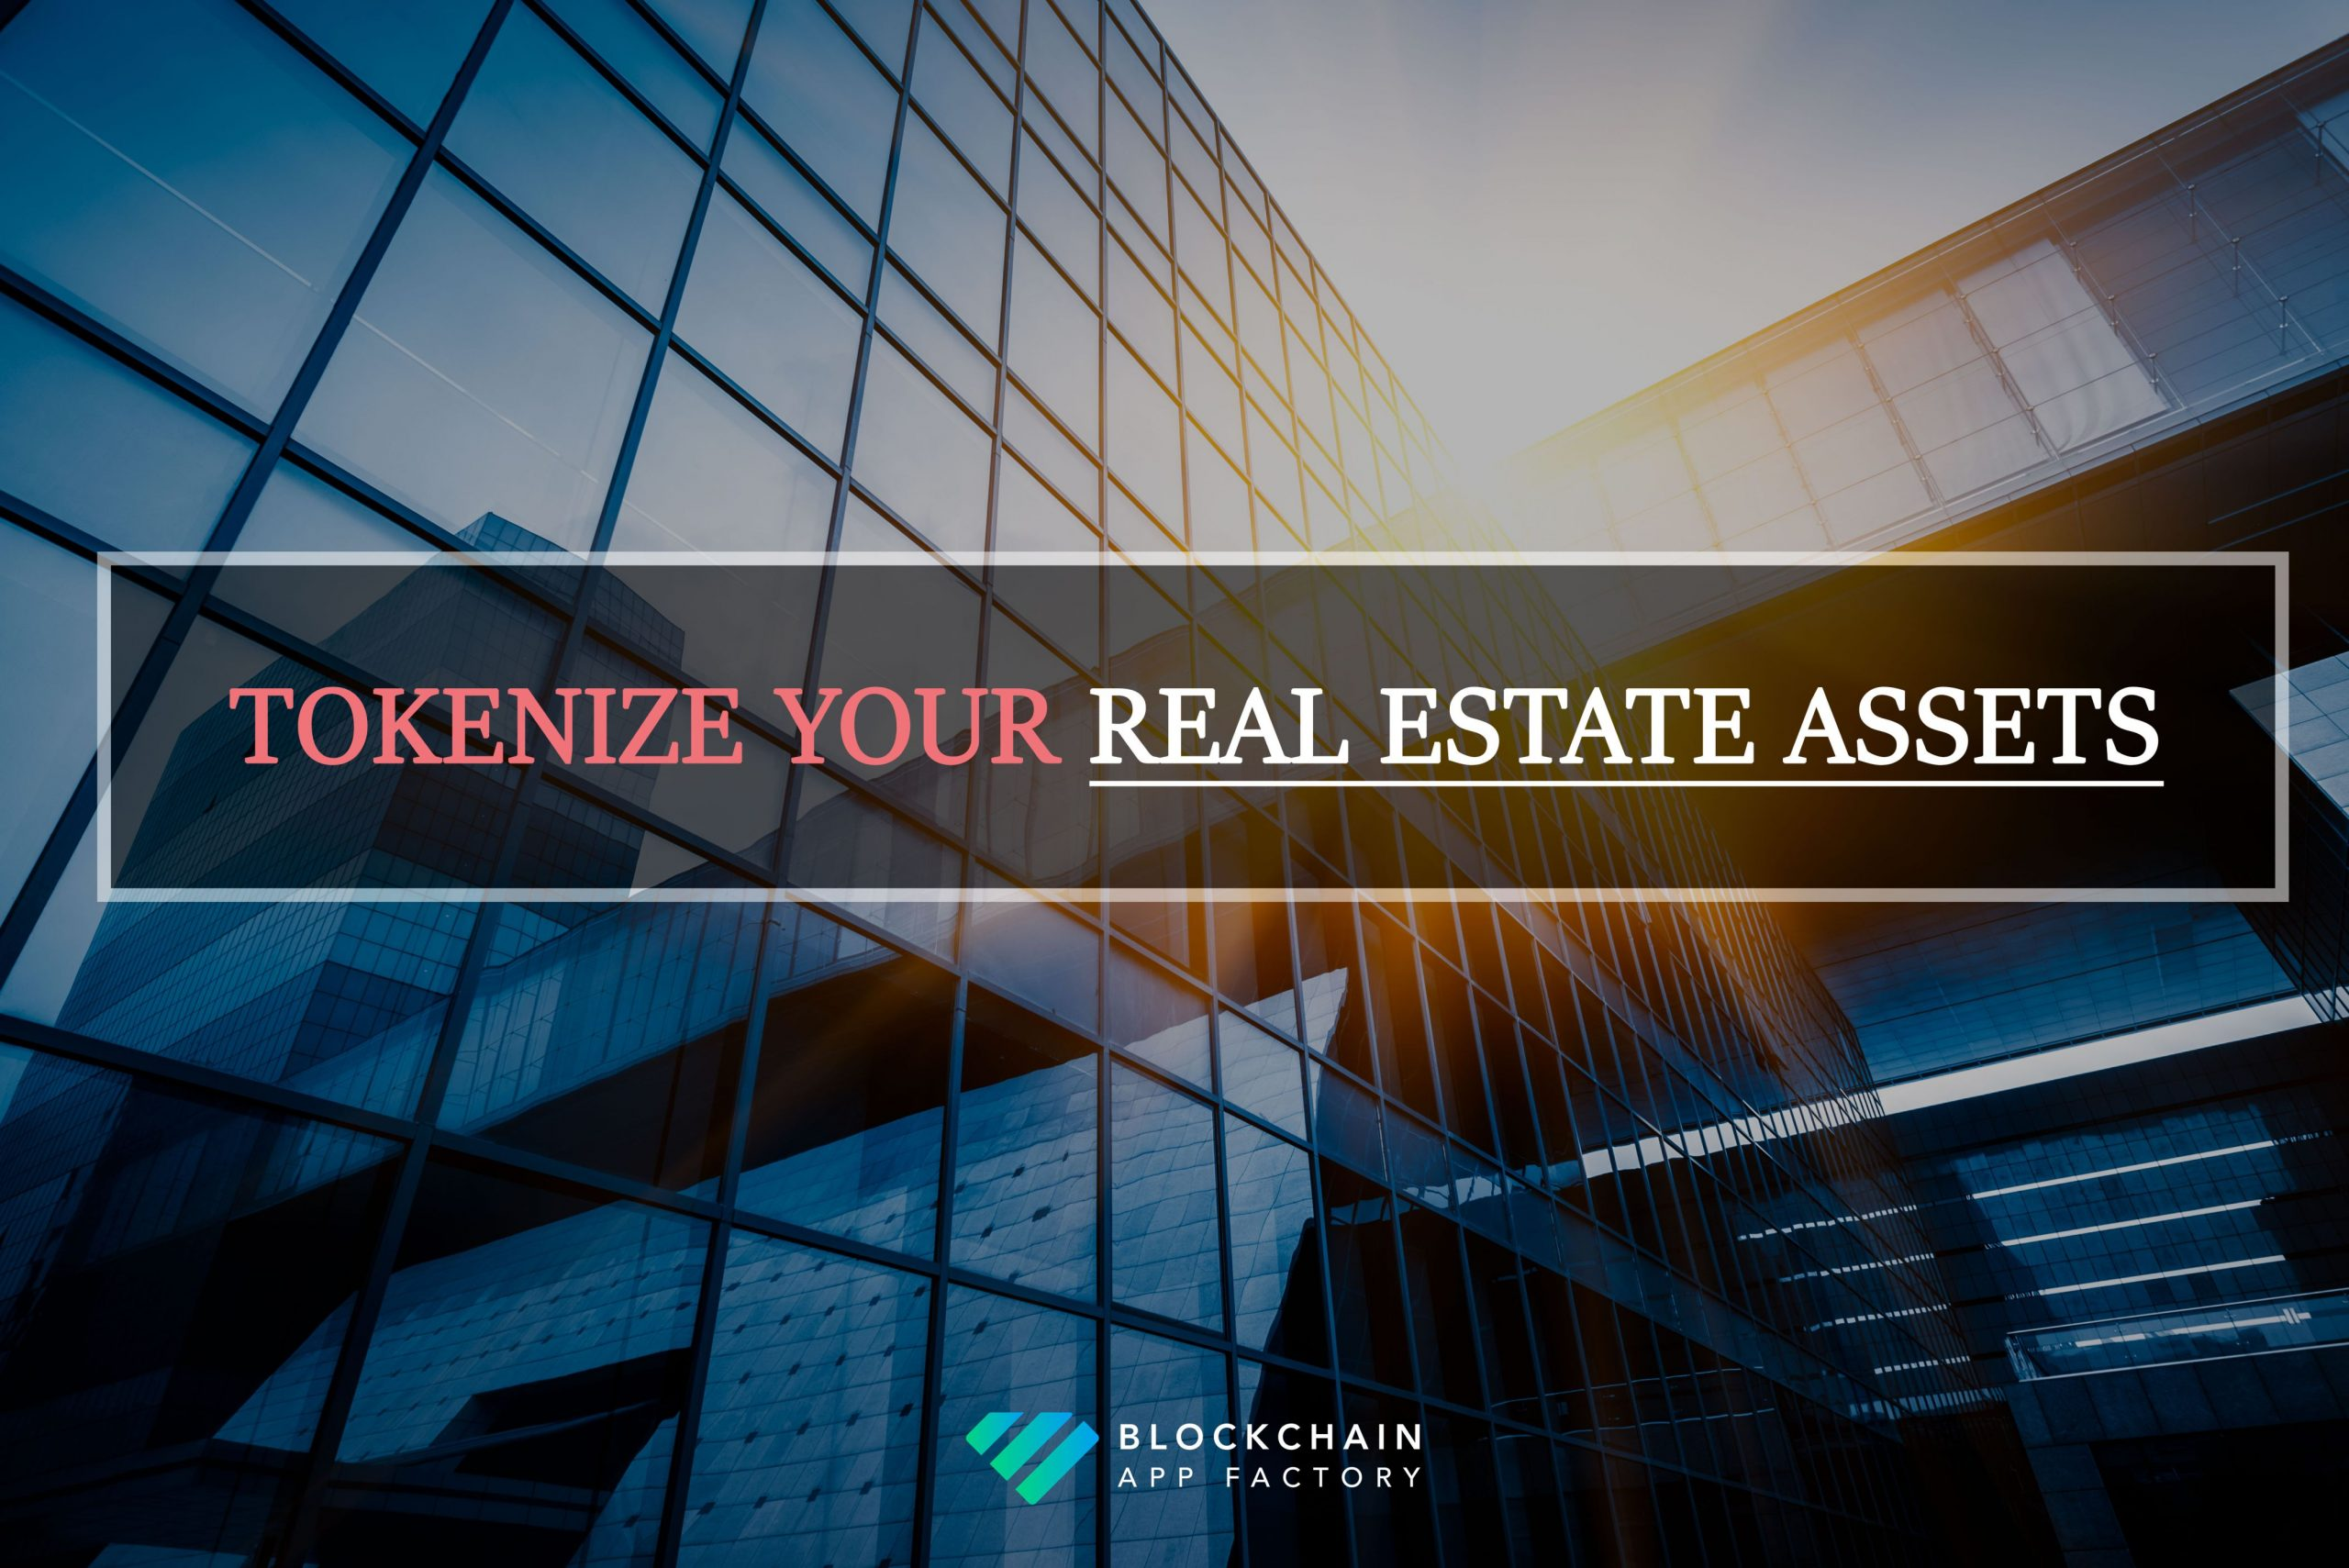 tokenize your real estate asset